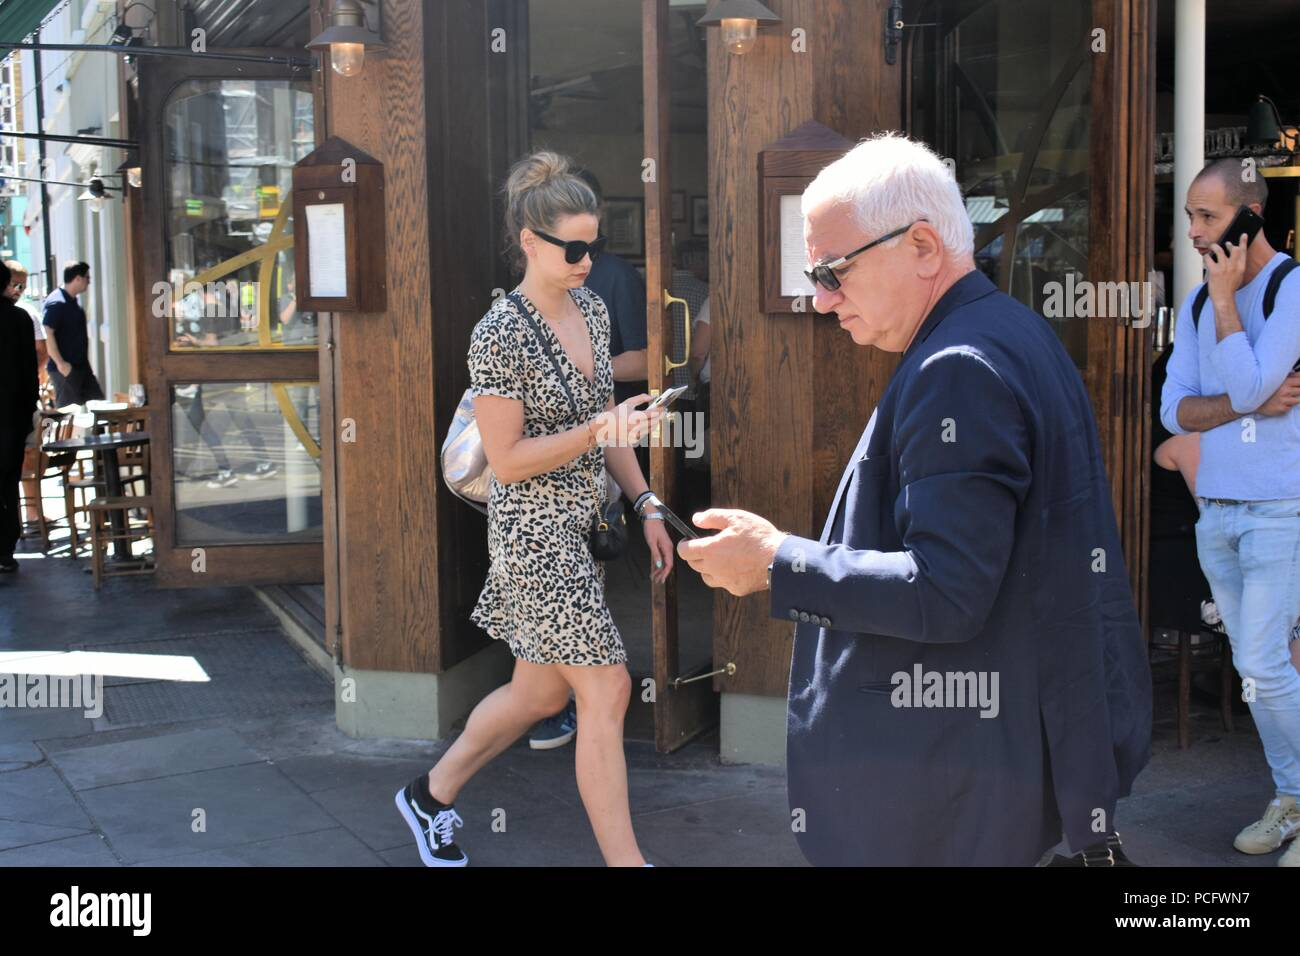 London. UK.August 2nd 2018. Ofcom report warns that smartphone addiction increasing rapidly. Londoners check their smartphones on average every 12 minutes. People in Soho and the West End check their smartphones. © Brian Minkoff / Alamy Live News - Stock Image